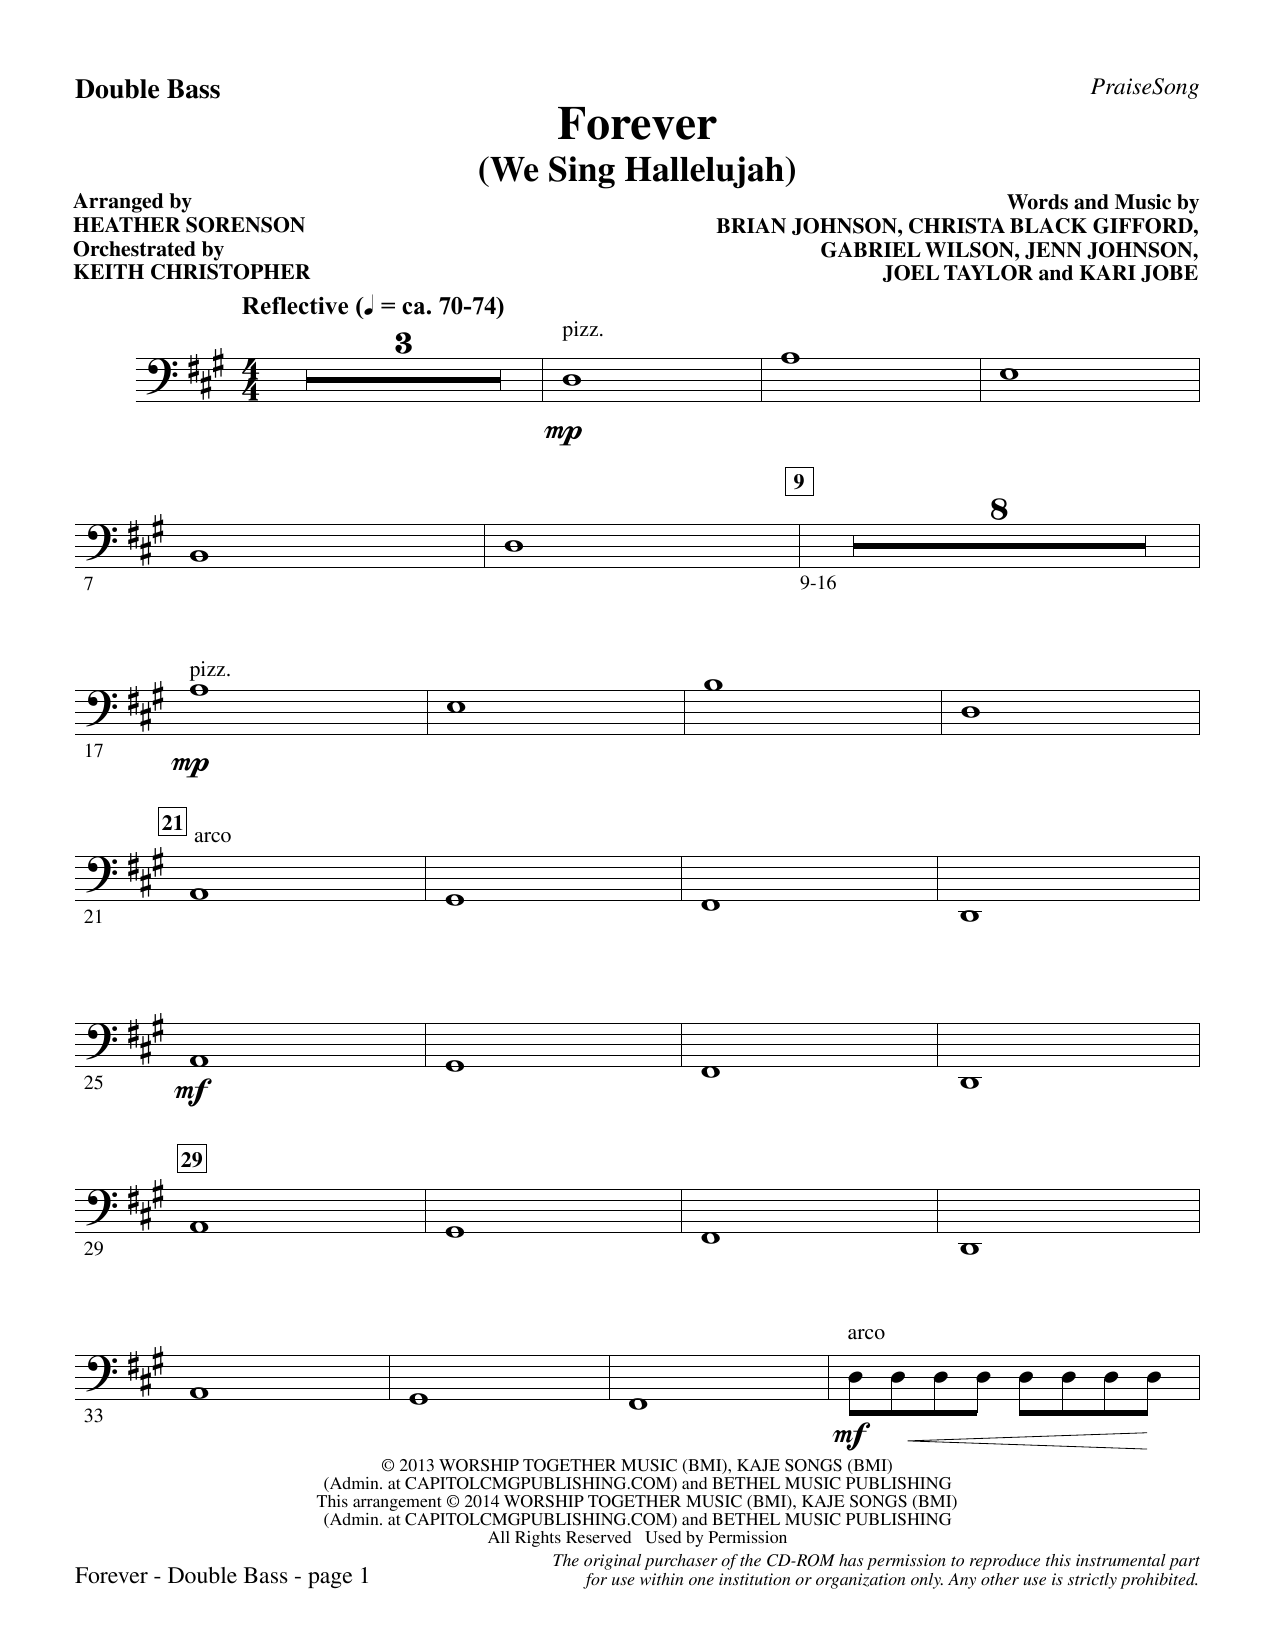 Forever (We Sing Hallelujah) - Double Bass Sheet Music